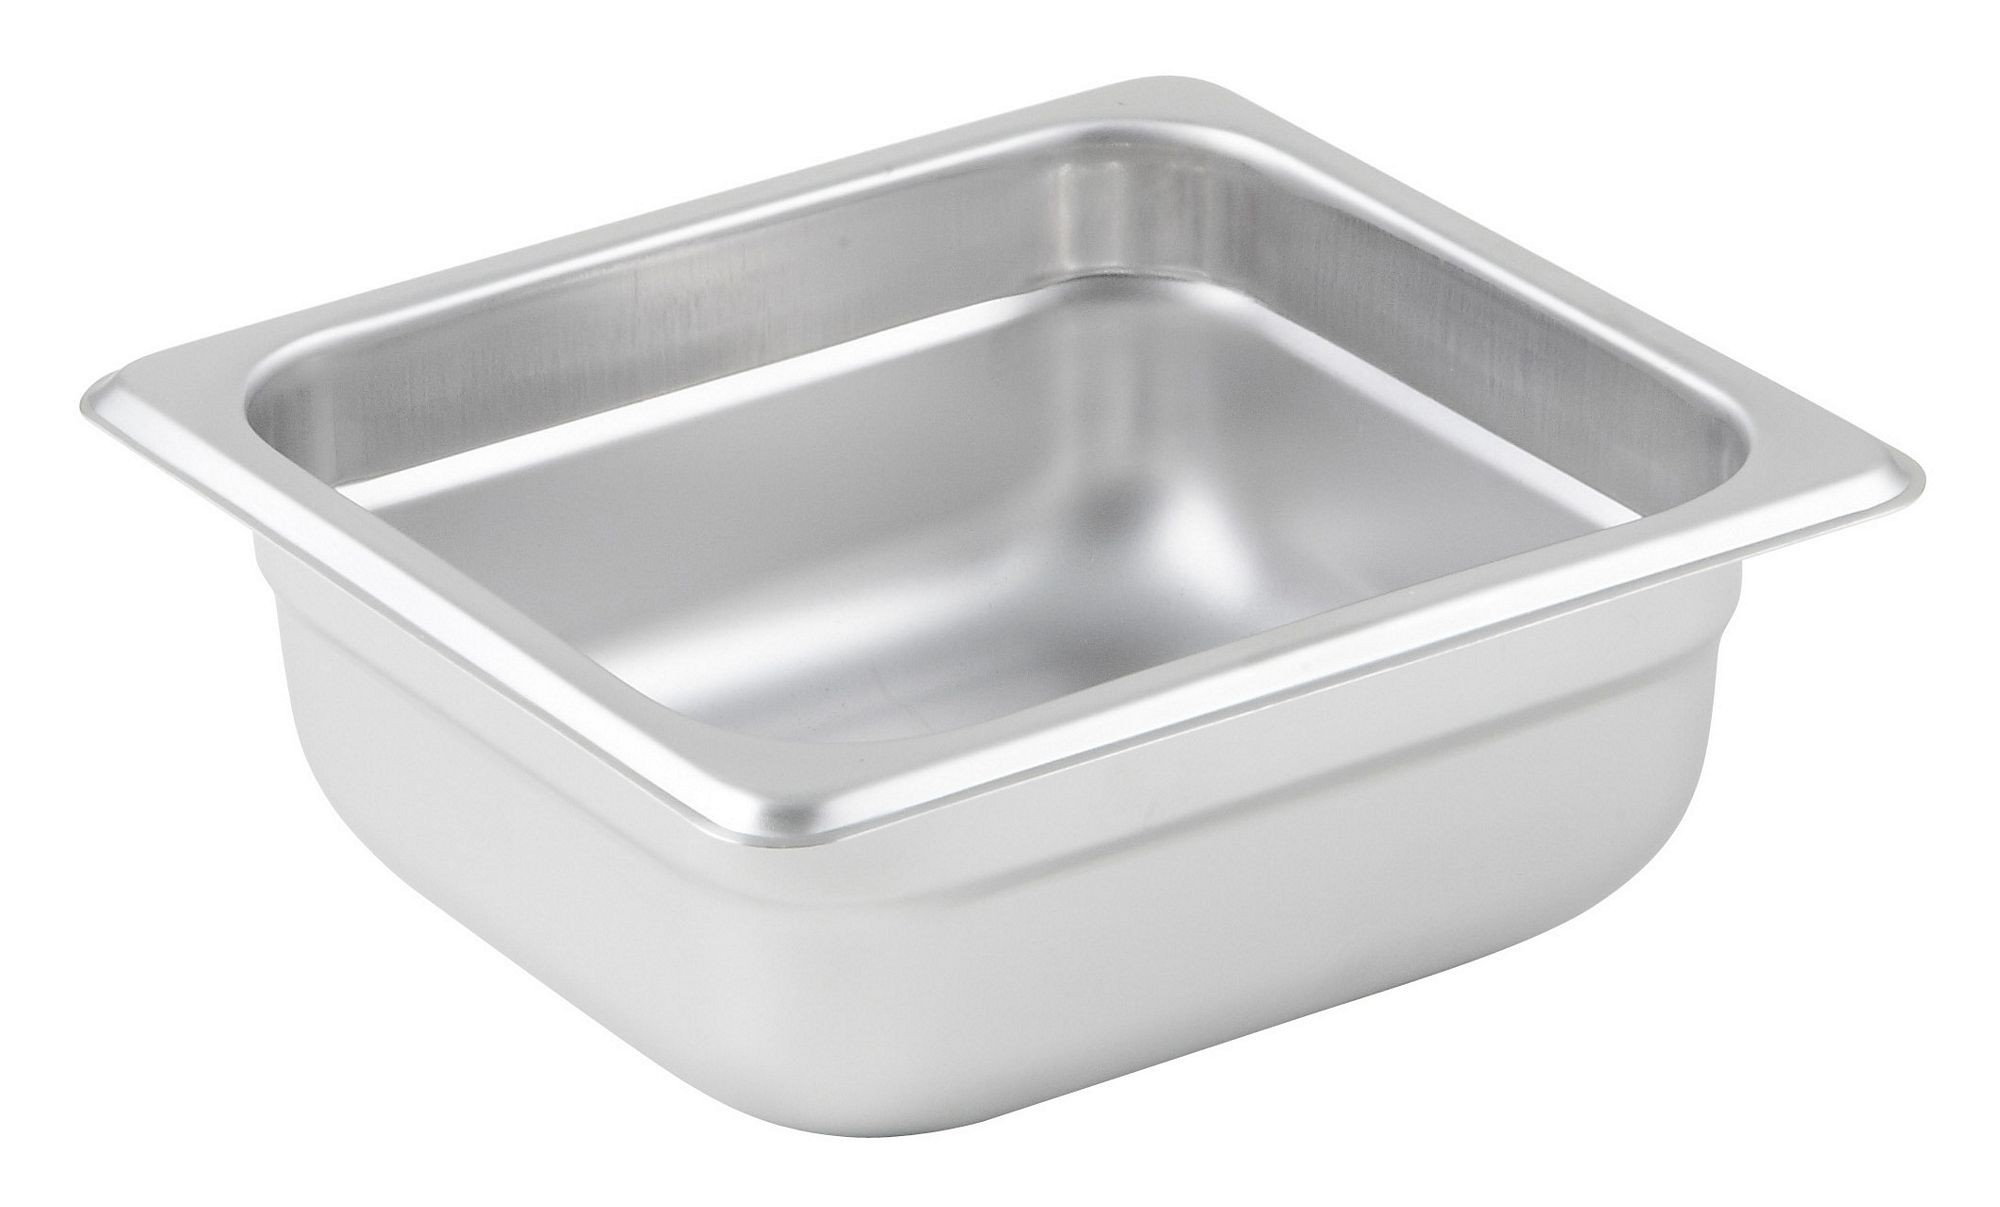 "Winco SPJL-602 1/6 Size Anti-Jam 25 Gauge Steam Table Pan 2-1/2"" Deep"